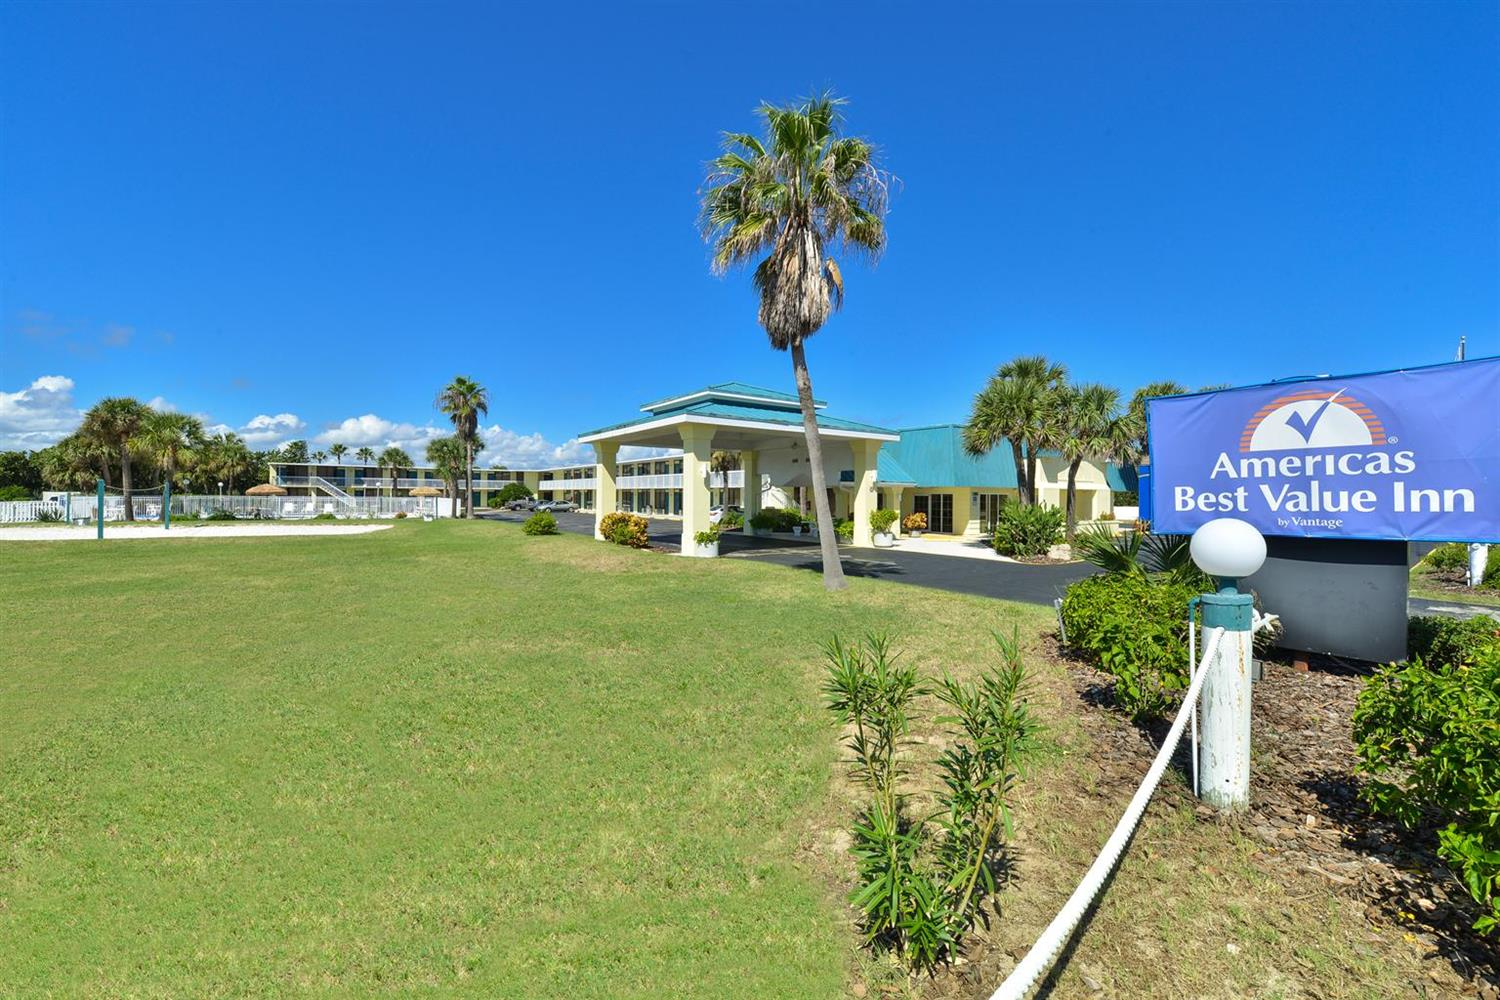 Americas Best Value Inn Satellite Beach